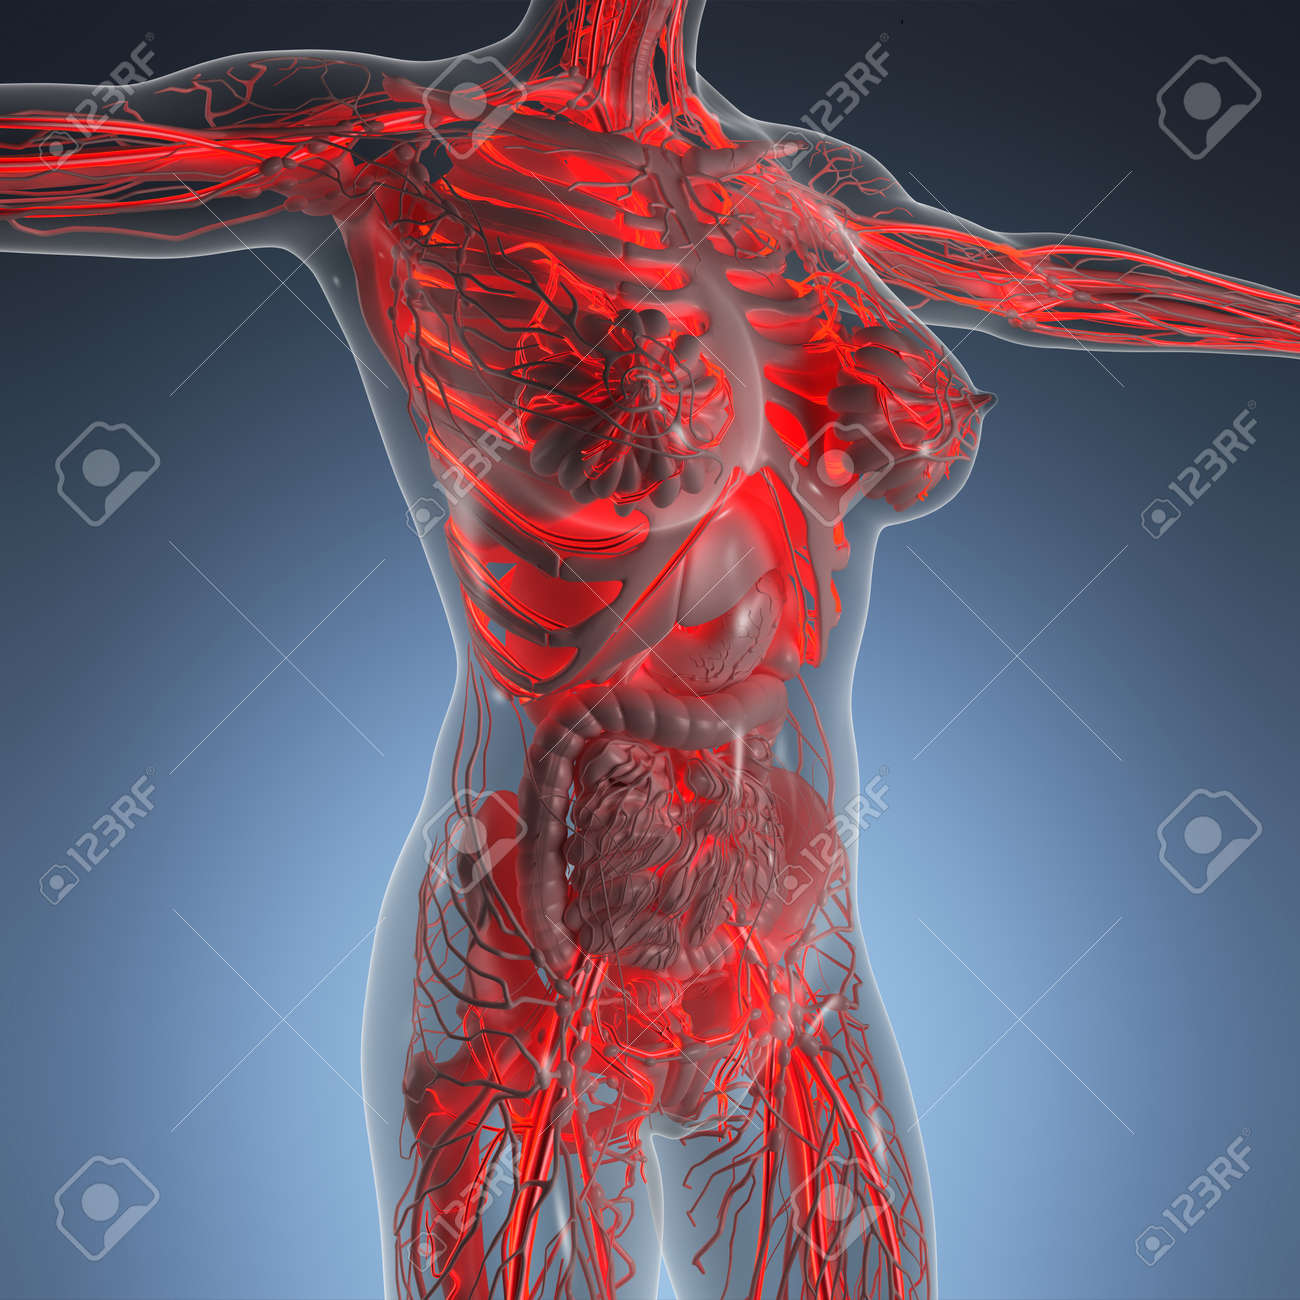 Science Anatomy Of Human Body In X-ray With Glow Blood Vessels Stock ...